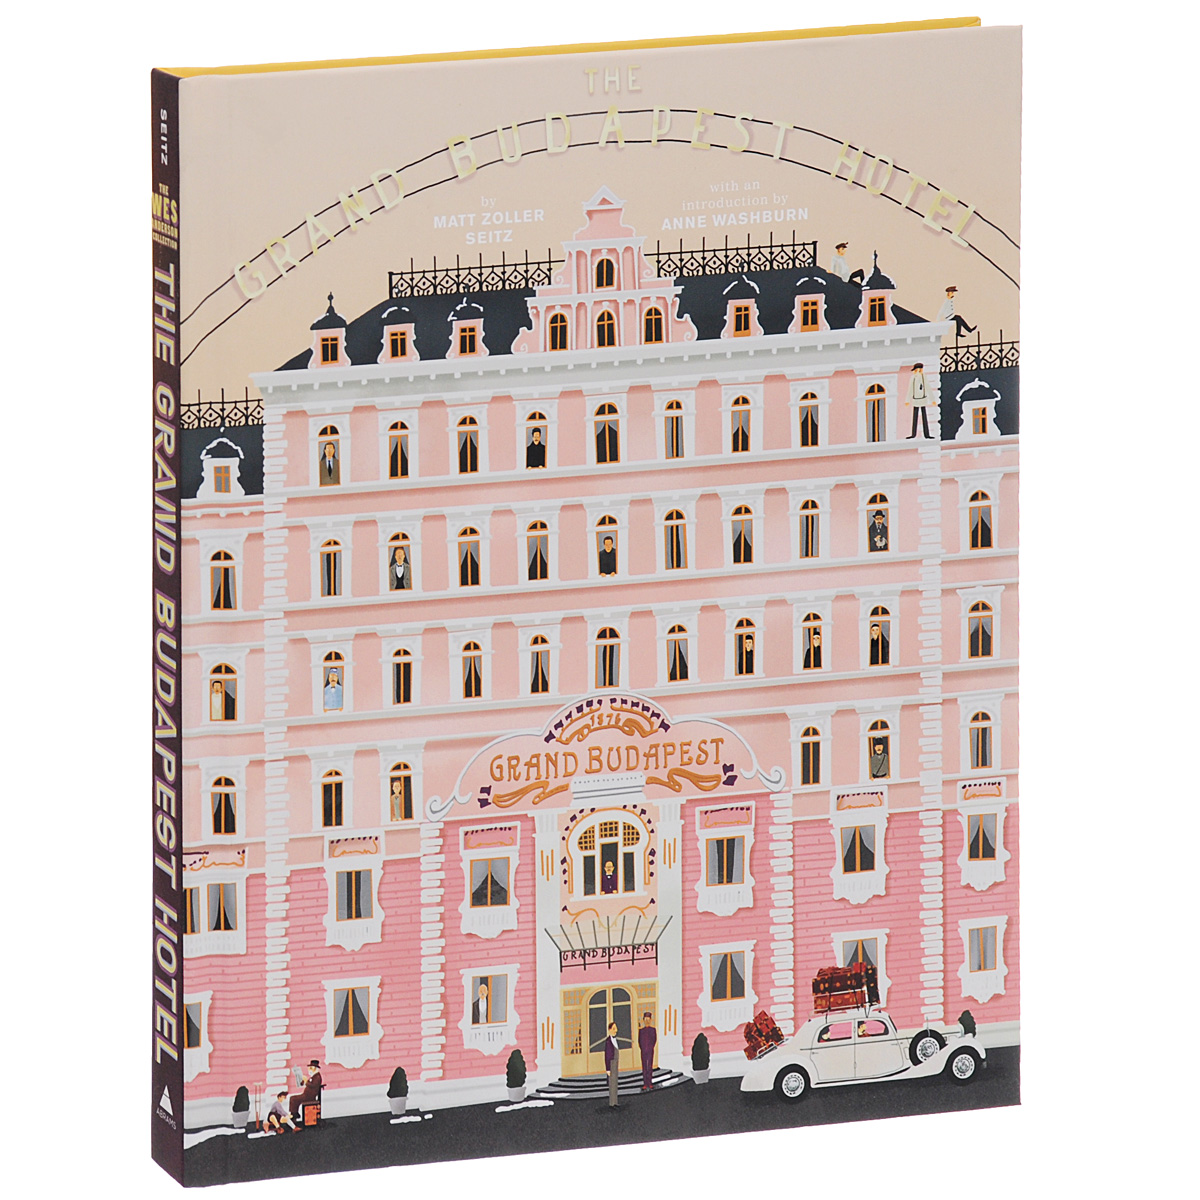 The Wes Anderson Collection: The Grand Budapest Hotel the critic